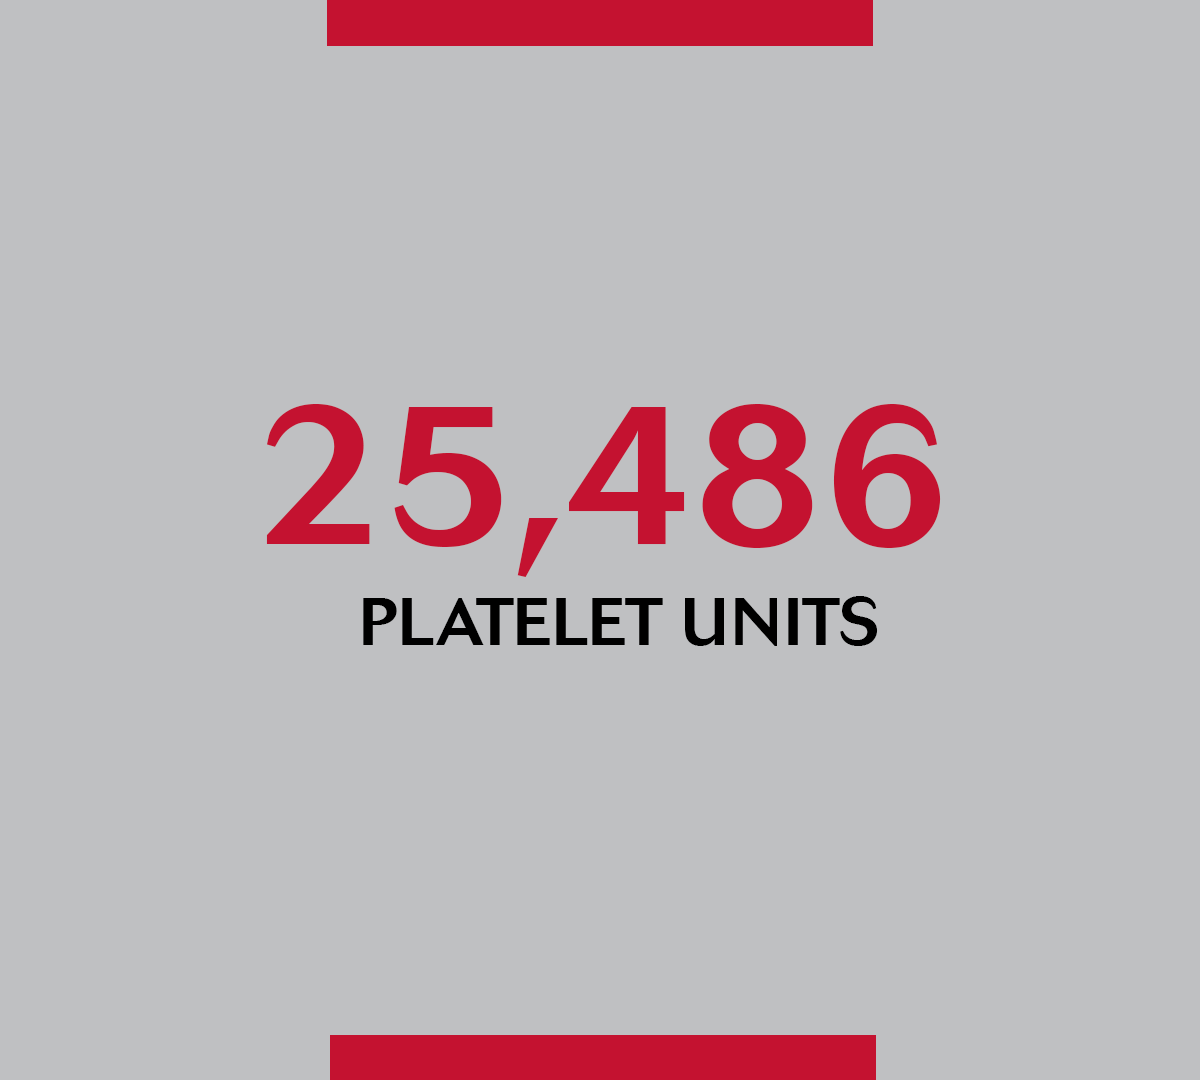 platelet_update_418_2019_3.png